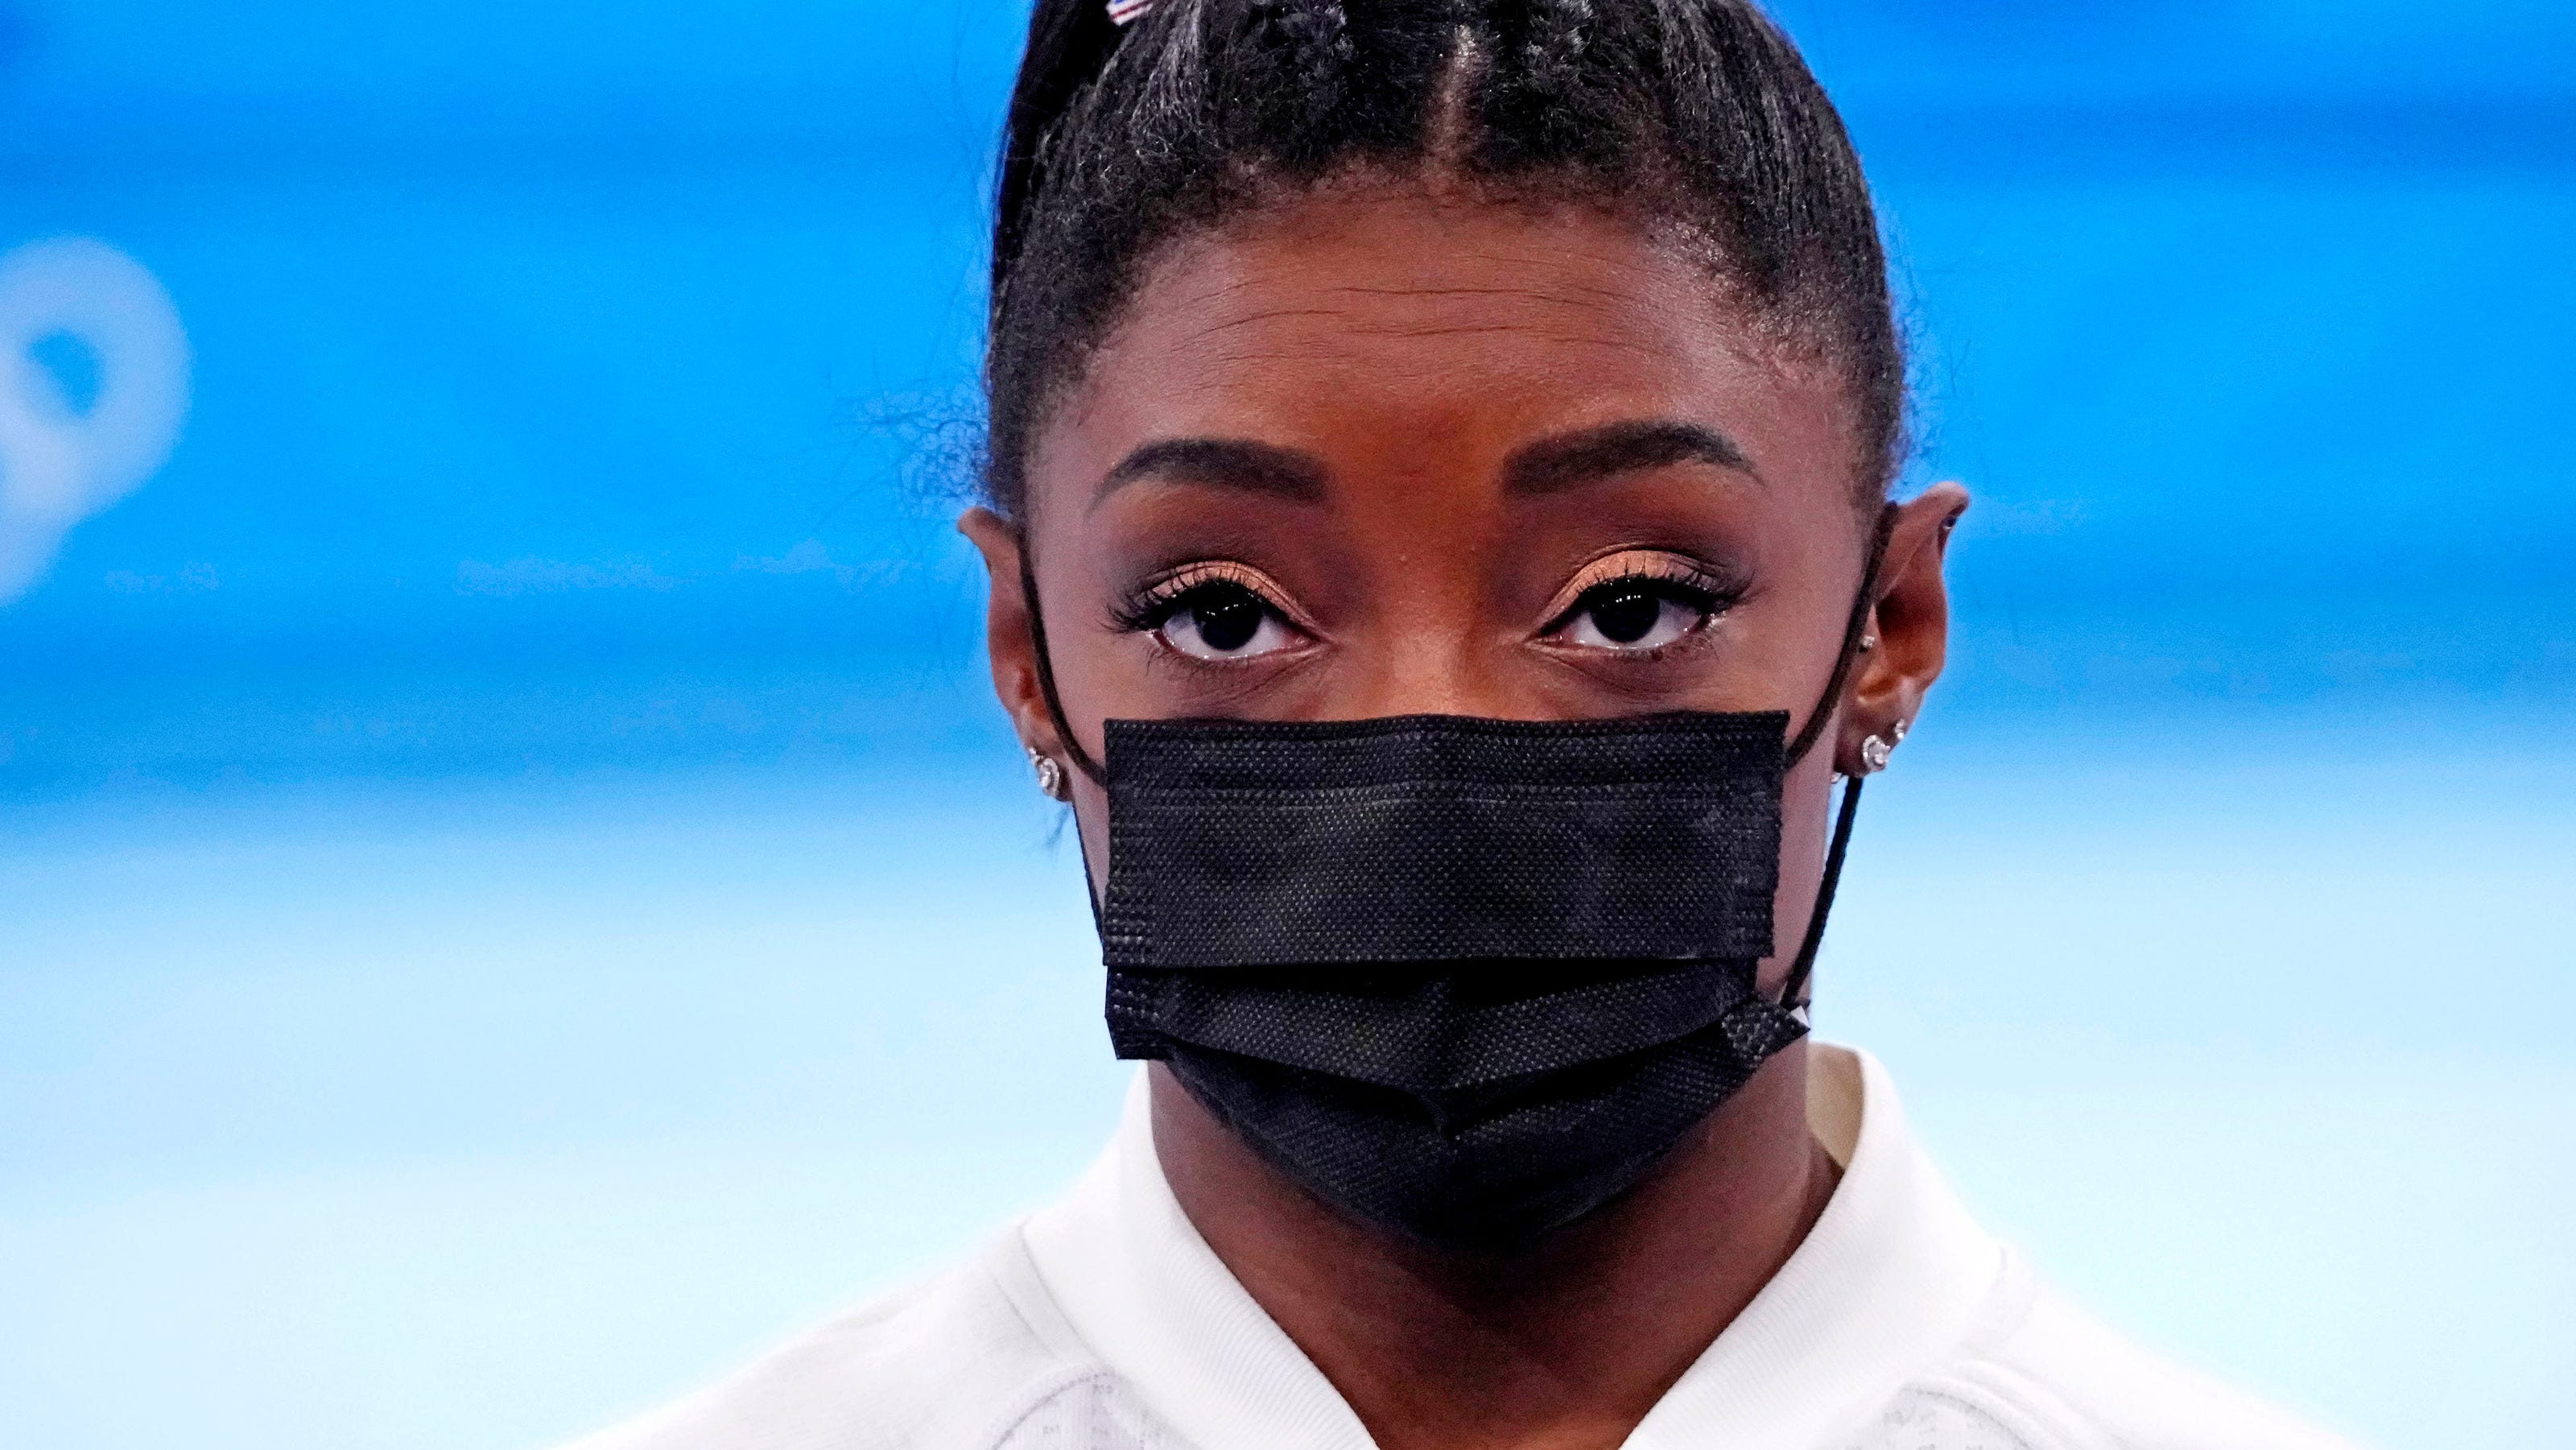 'The Olympics is overwhelming': Michael Phelps says he can relate to Simone Biles